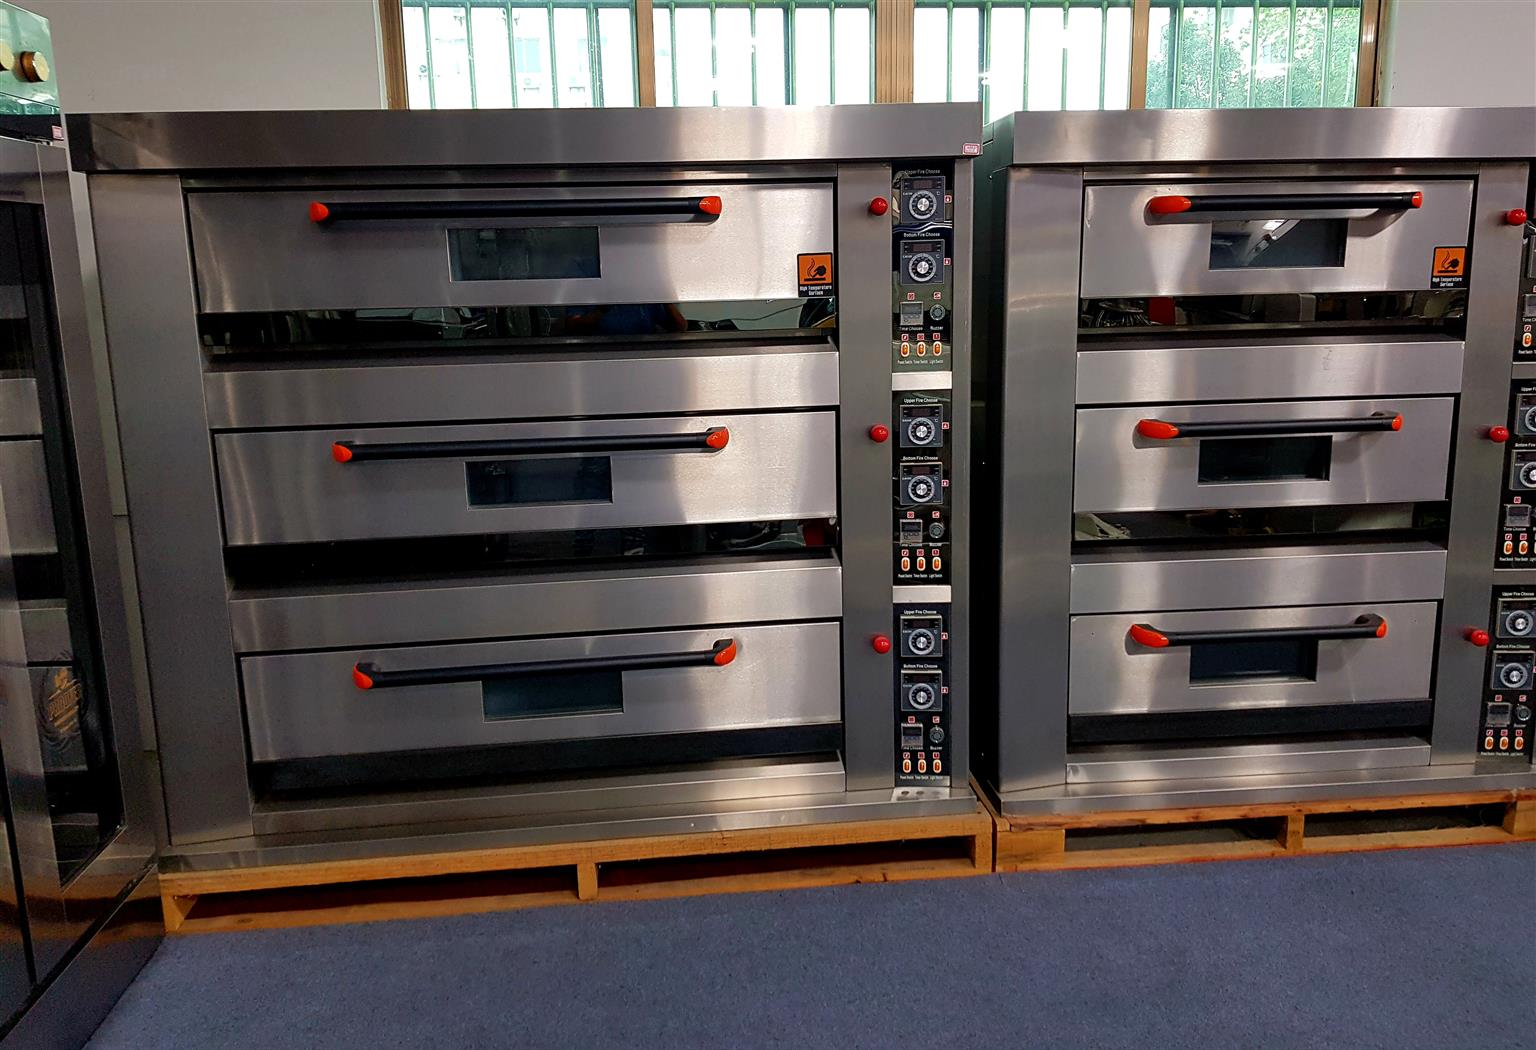 Electric Ovens For Sale Ovens For Sale Oven For Baking Bakery Machine Electric Oven Gas Oven Baking Stove Bread